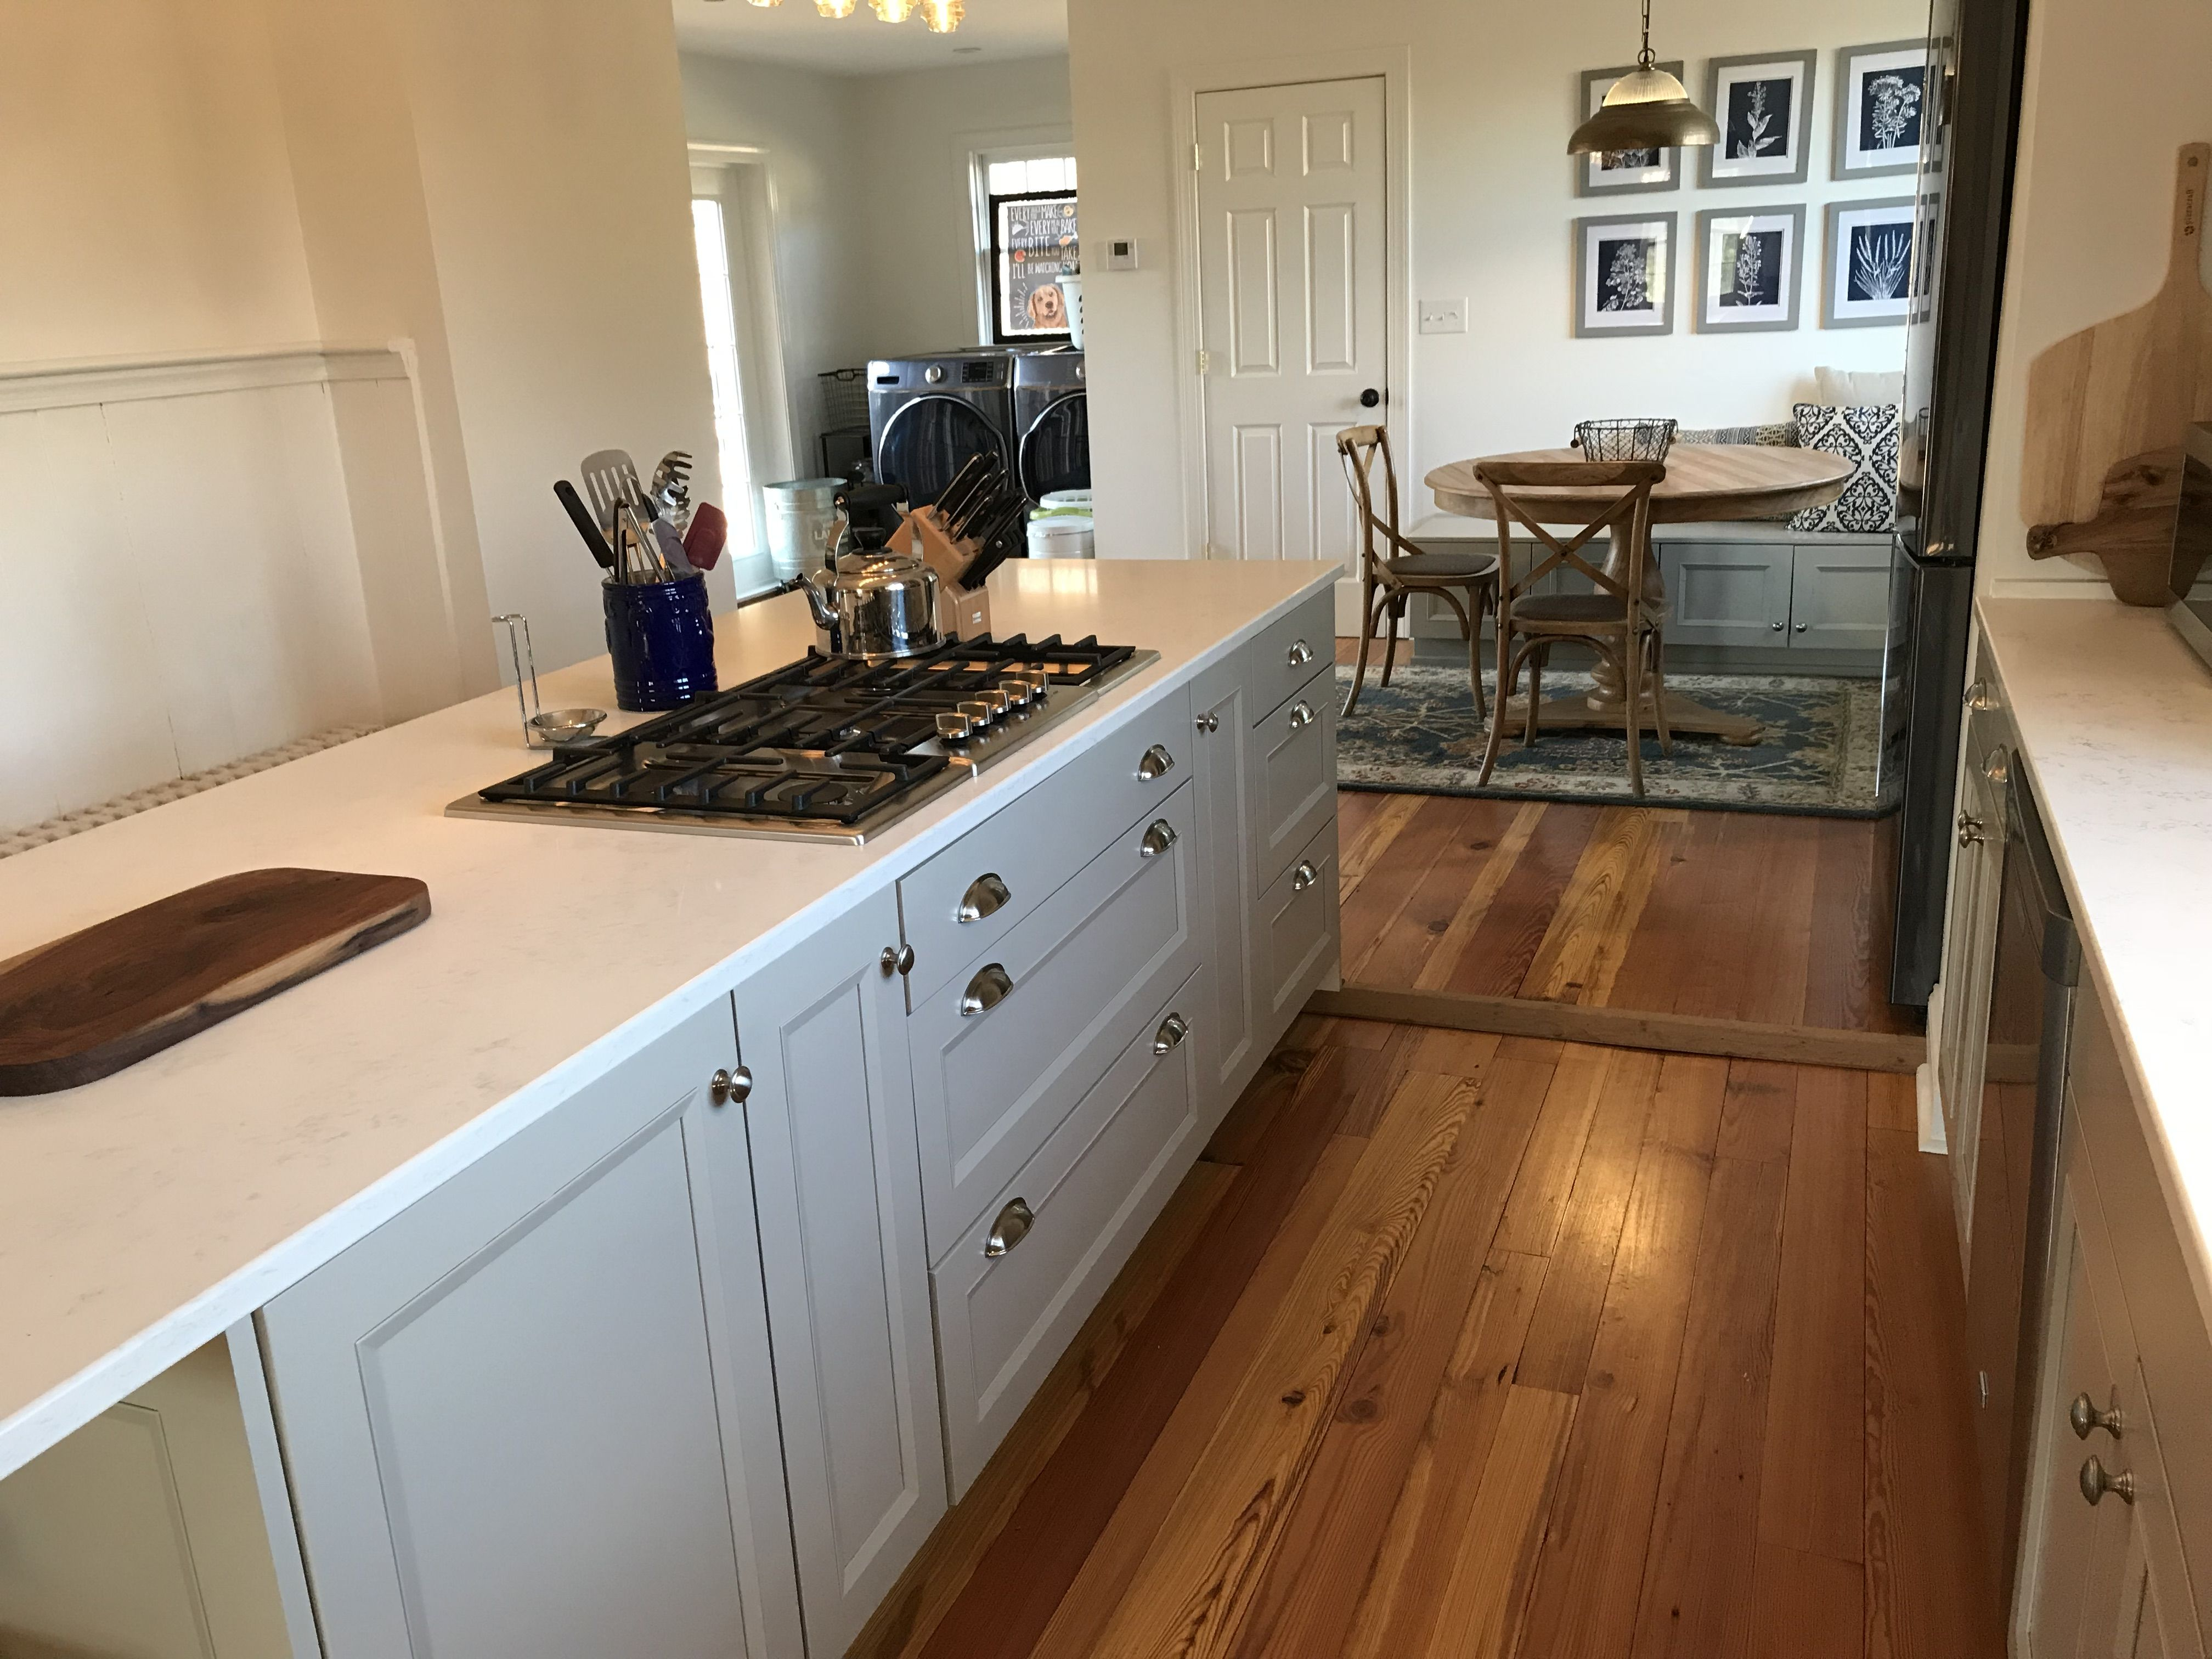 Brookhaven By Wood Mode Cabinets From Ideal Cabinets With Nova Door Style In Custom Color Antique Heart Pine Floors Wood Mode Heart Pine Flooring Pine Floors